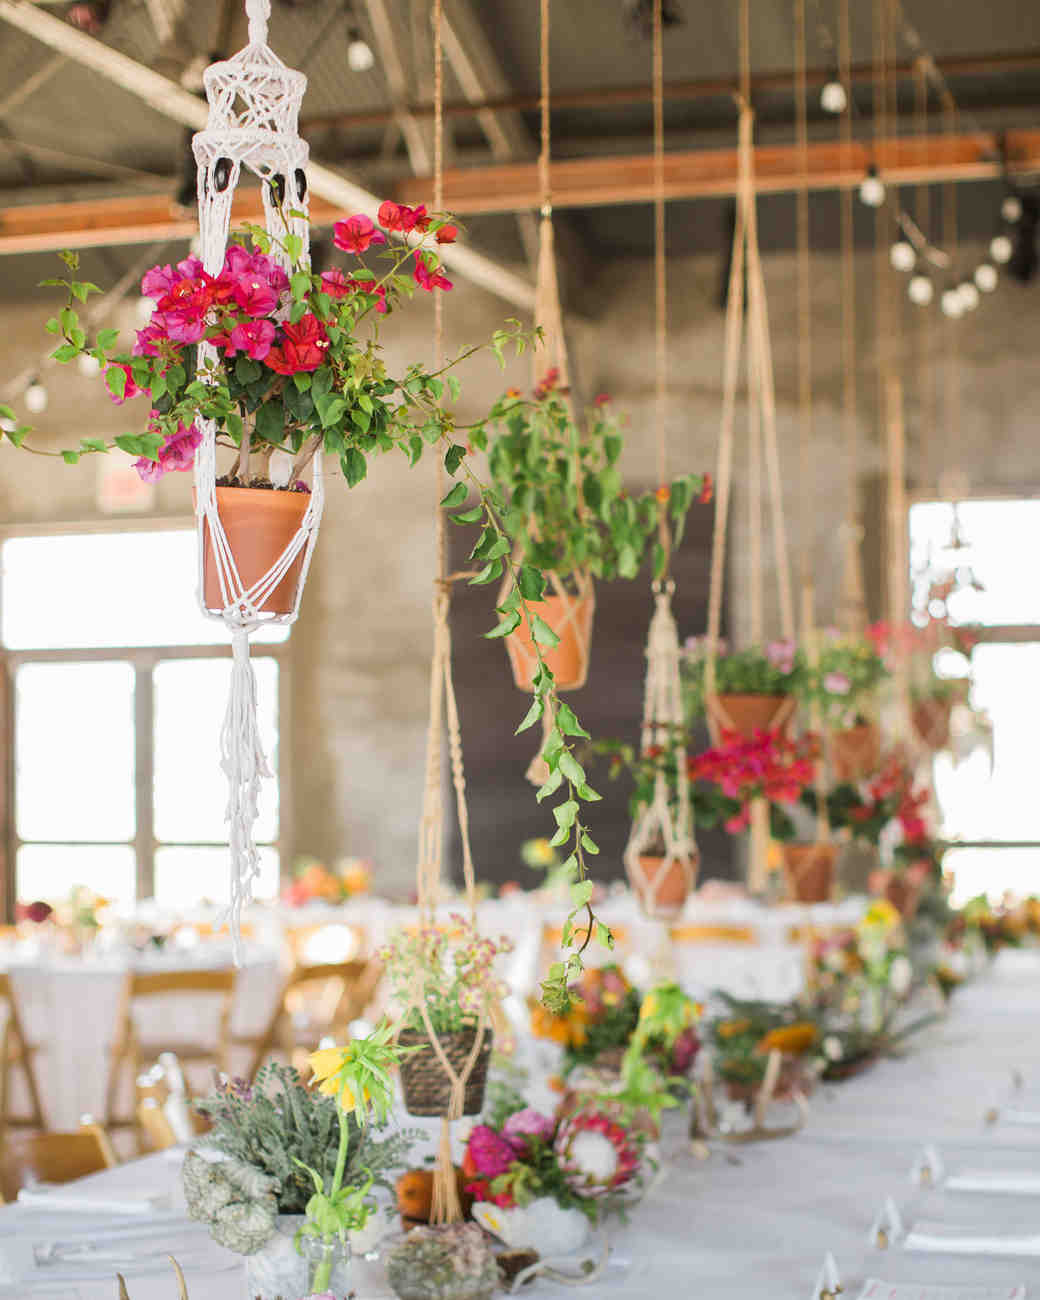 Boho Chic Wedding Ideas For Free Spirited Brides And Grooms Martha